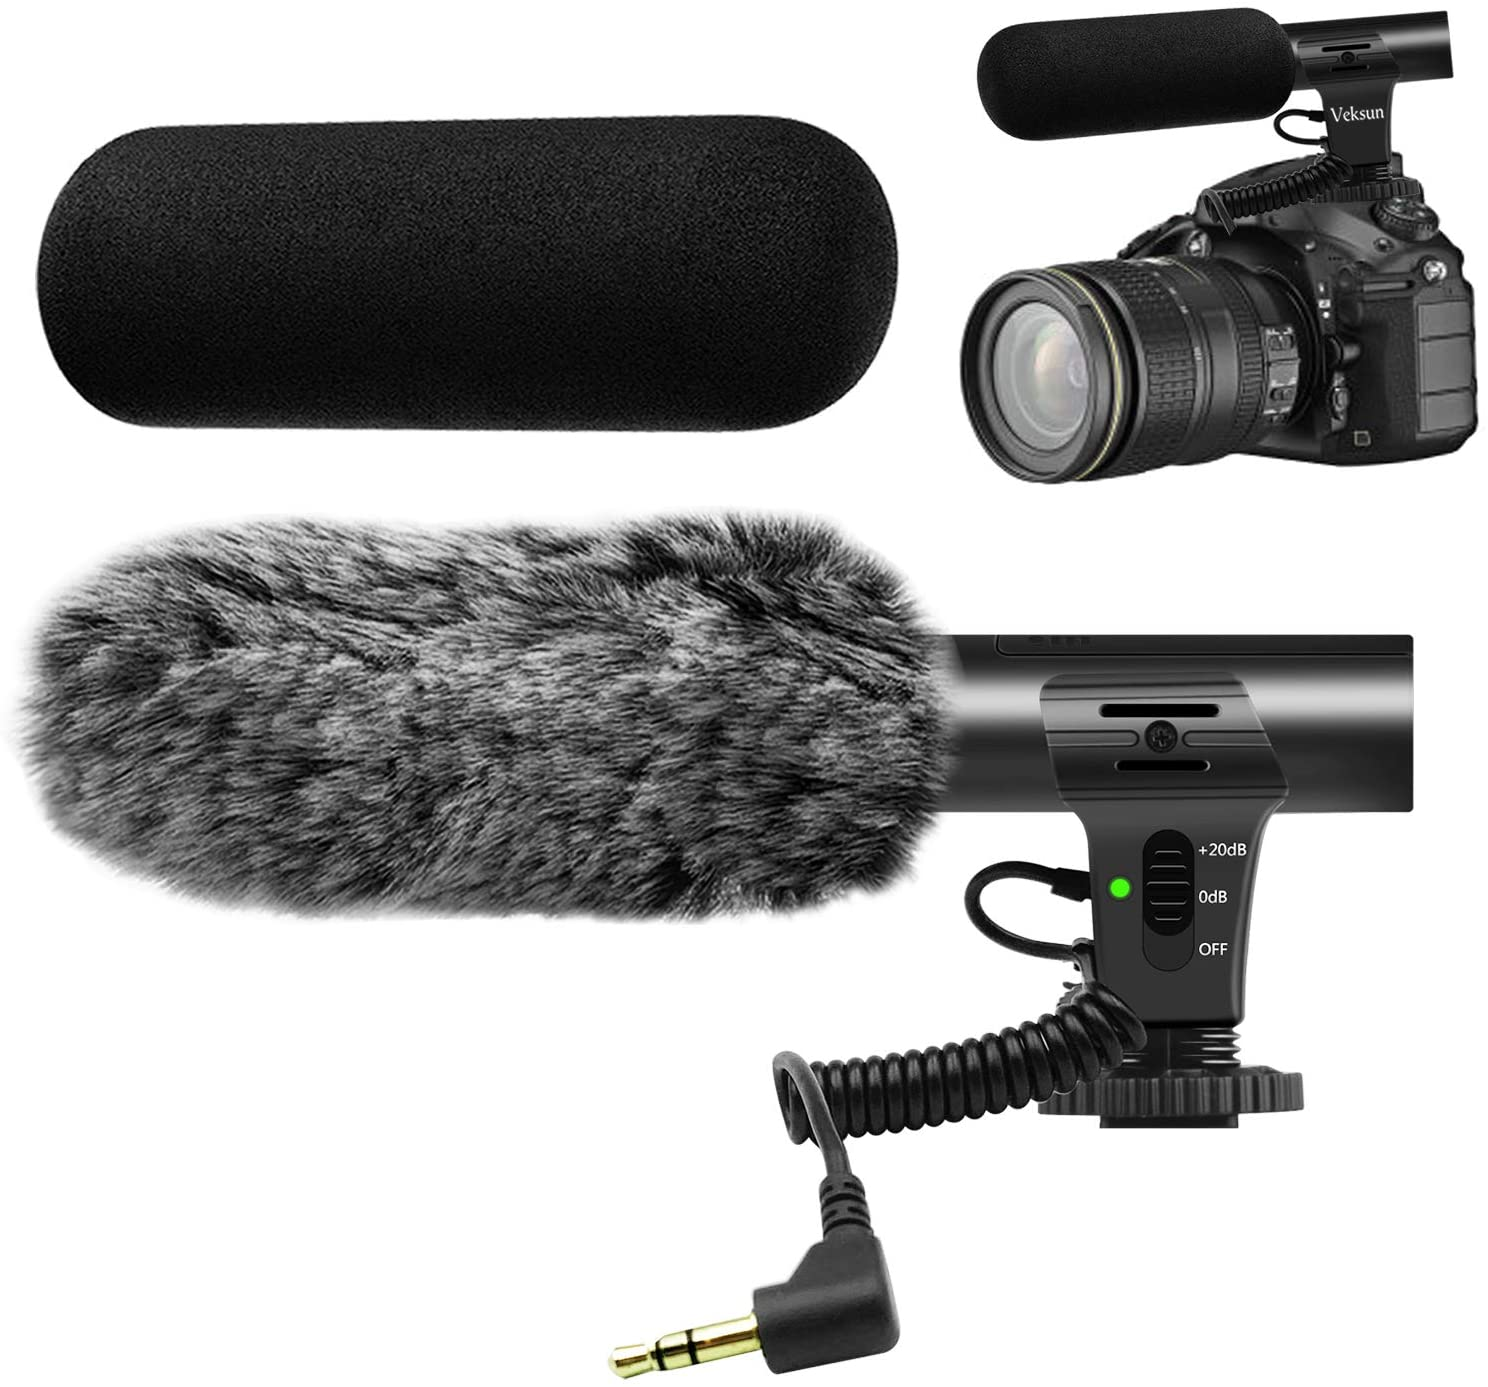 71Jn8dJjsYL. AC SL1500  - How to shoot video like a pro and make your brand benefit more.